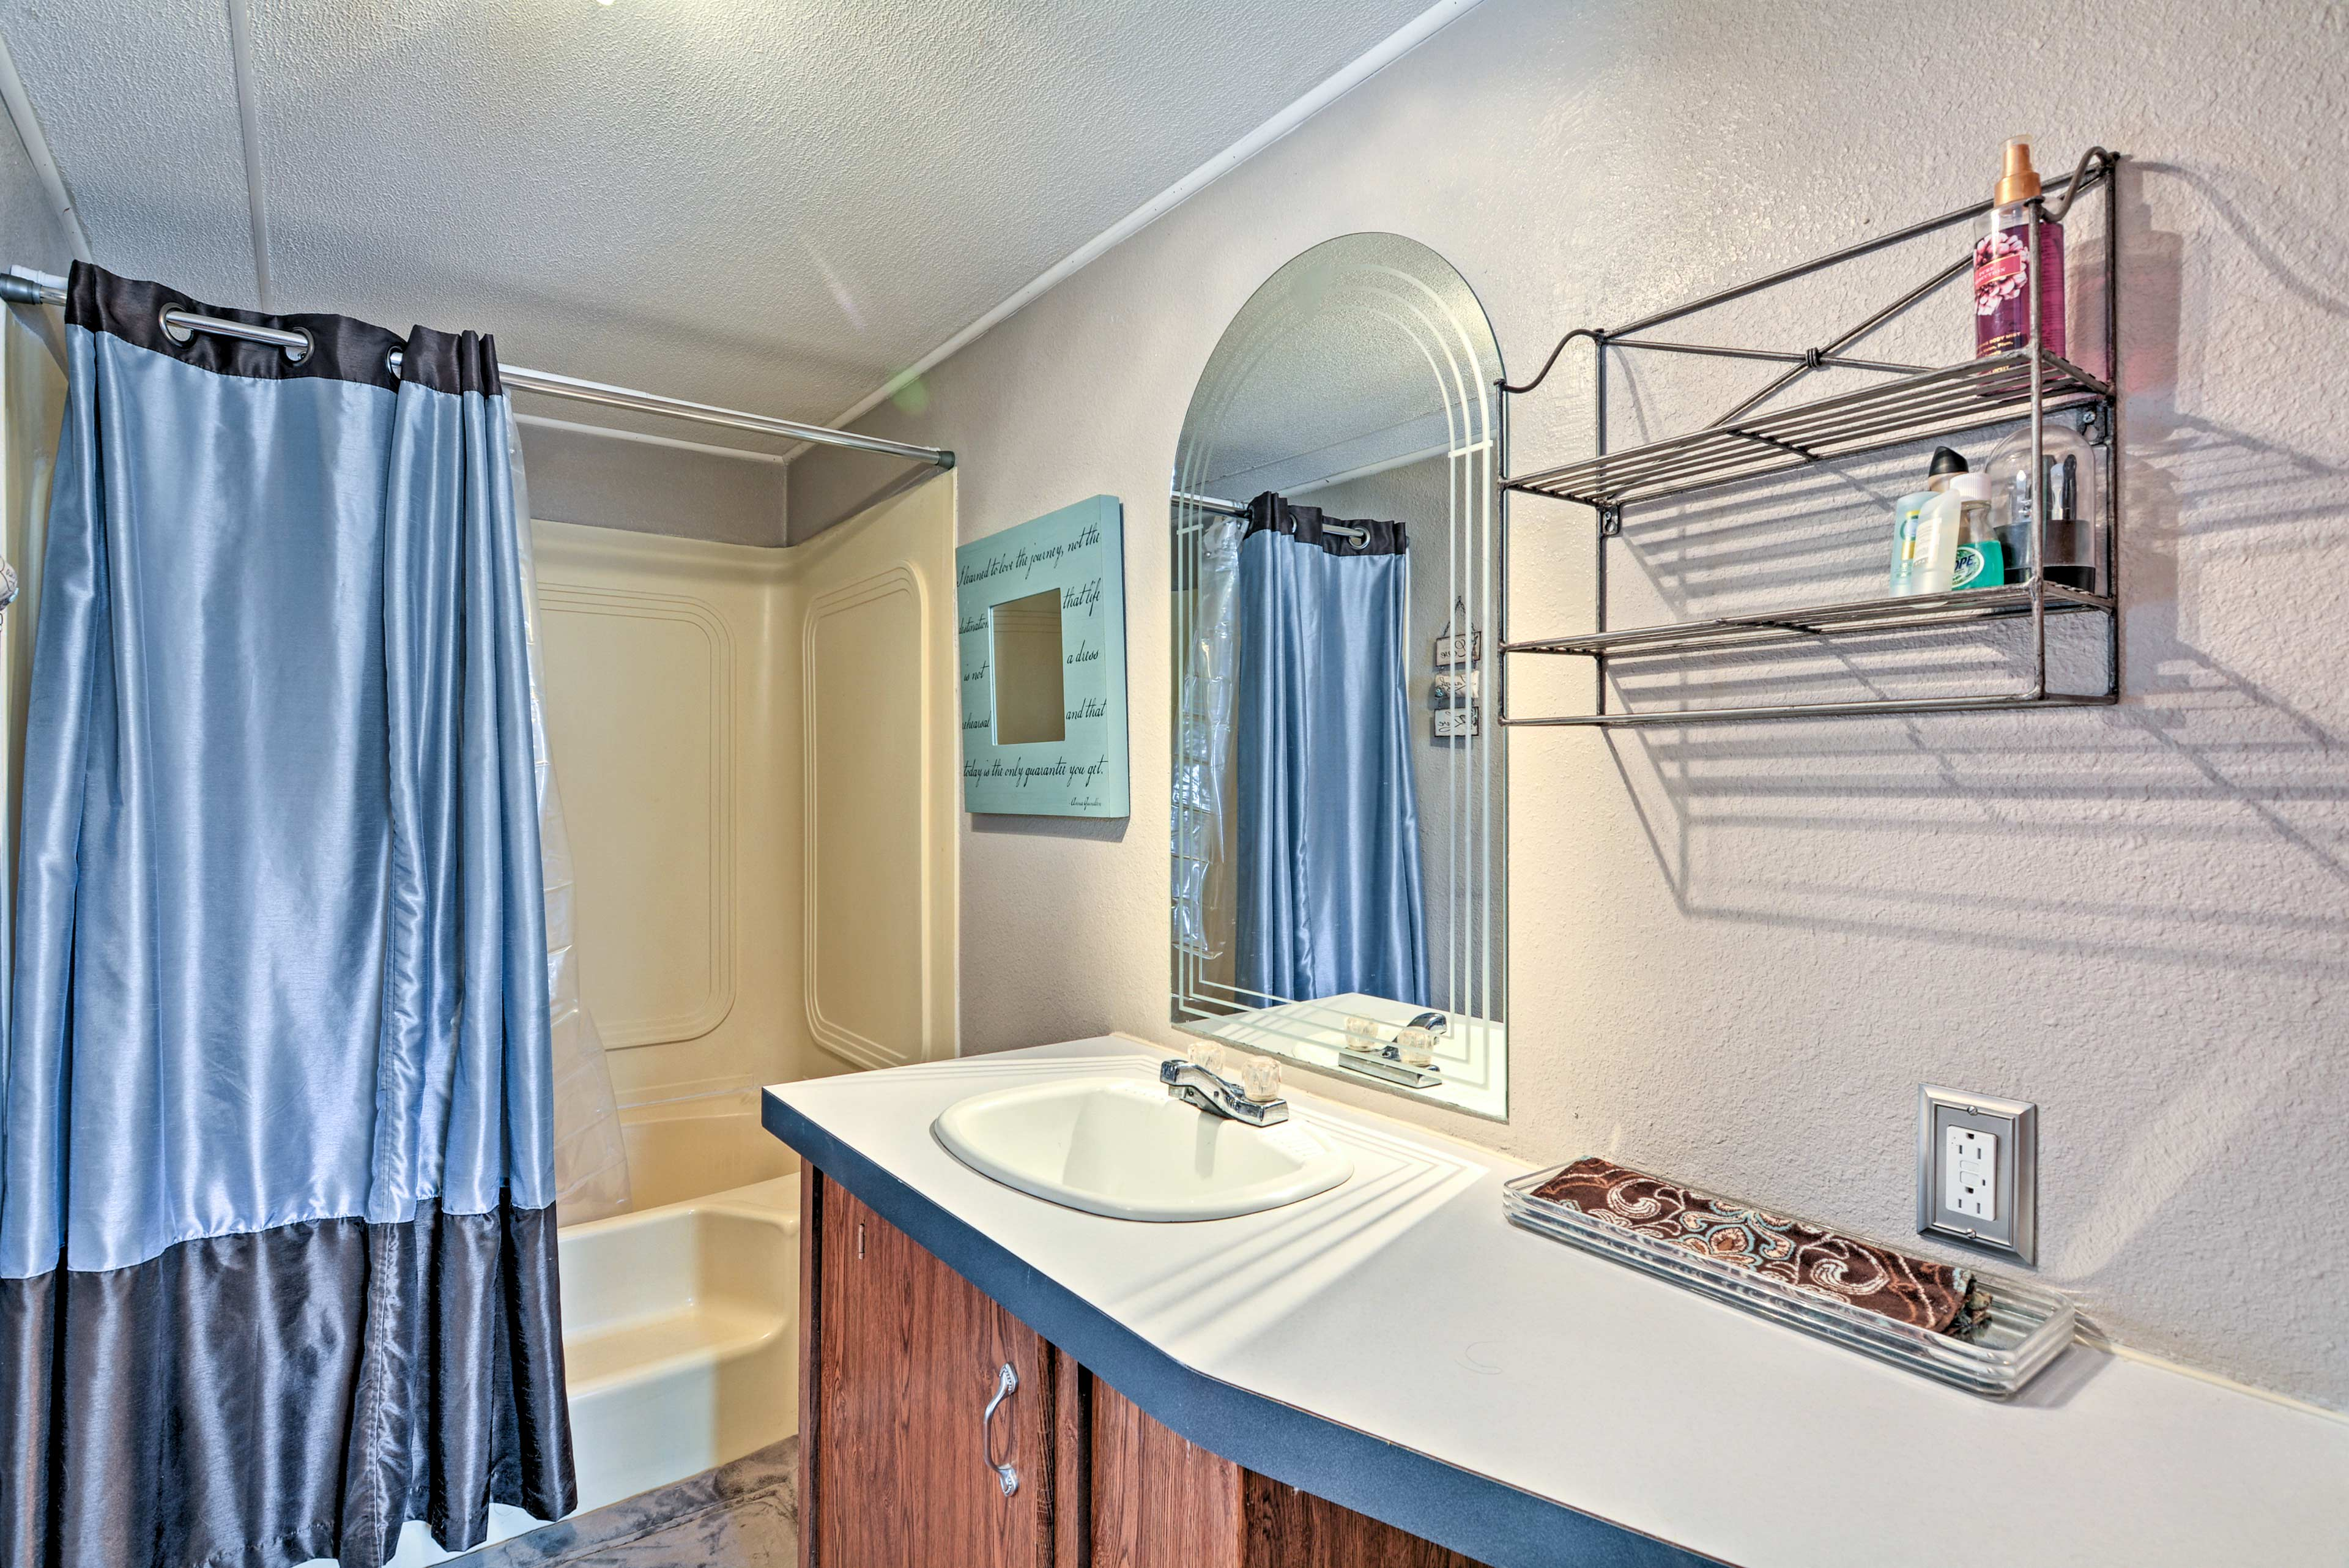 The home's 2 full bathrooms are also stocked with complimentary toiletries.